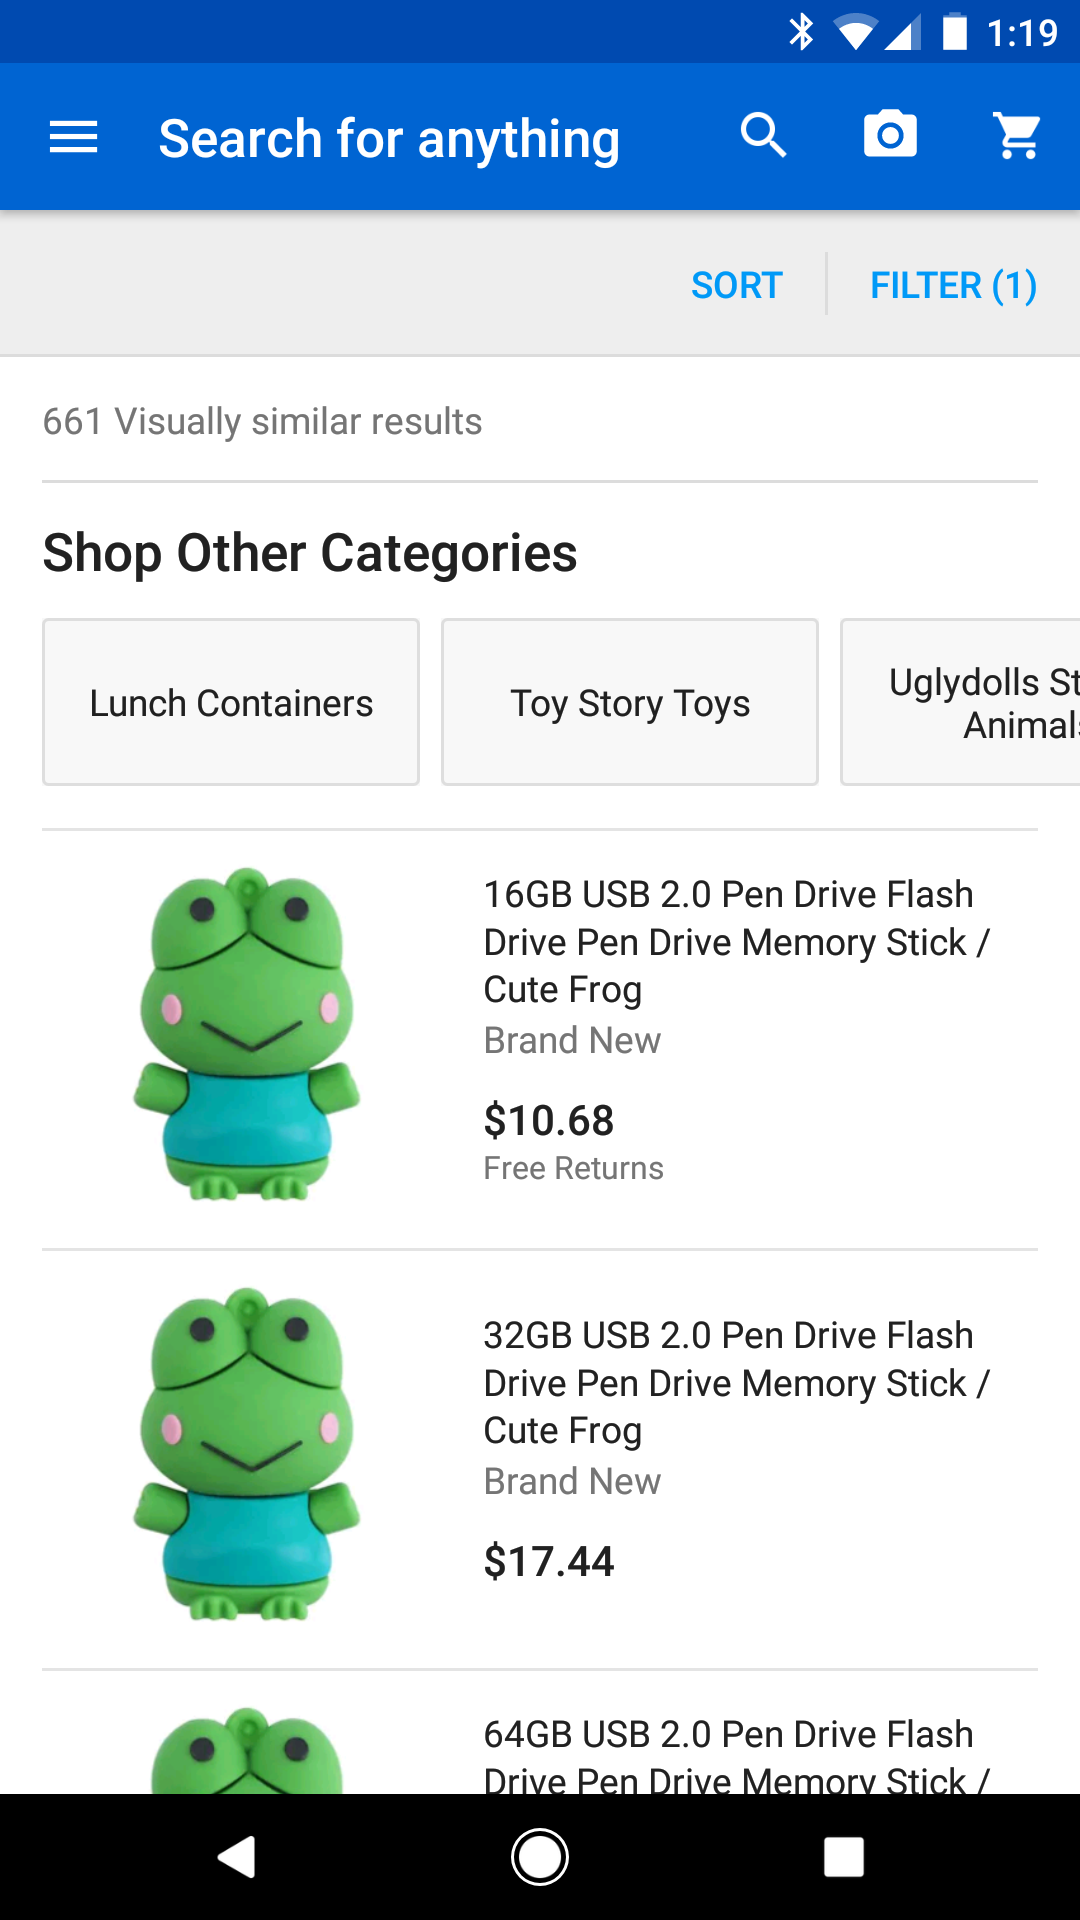 eBay adds AI-powered image search to its mobile apps ...